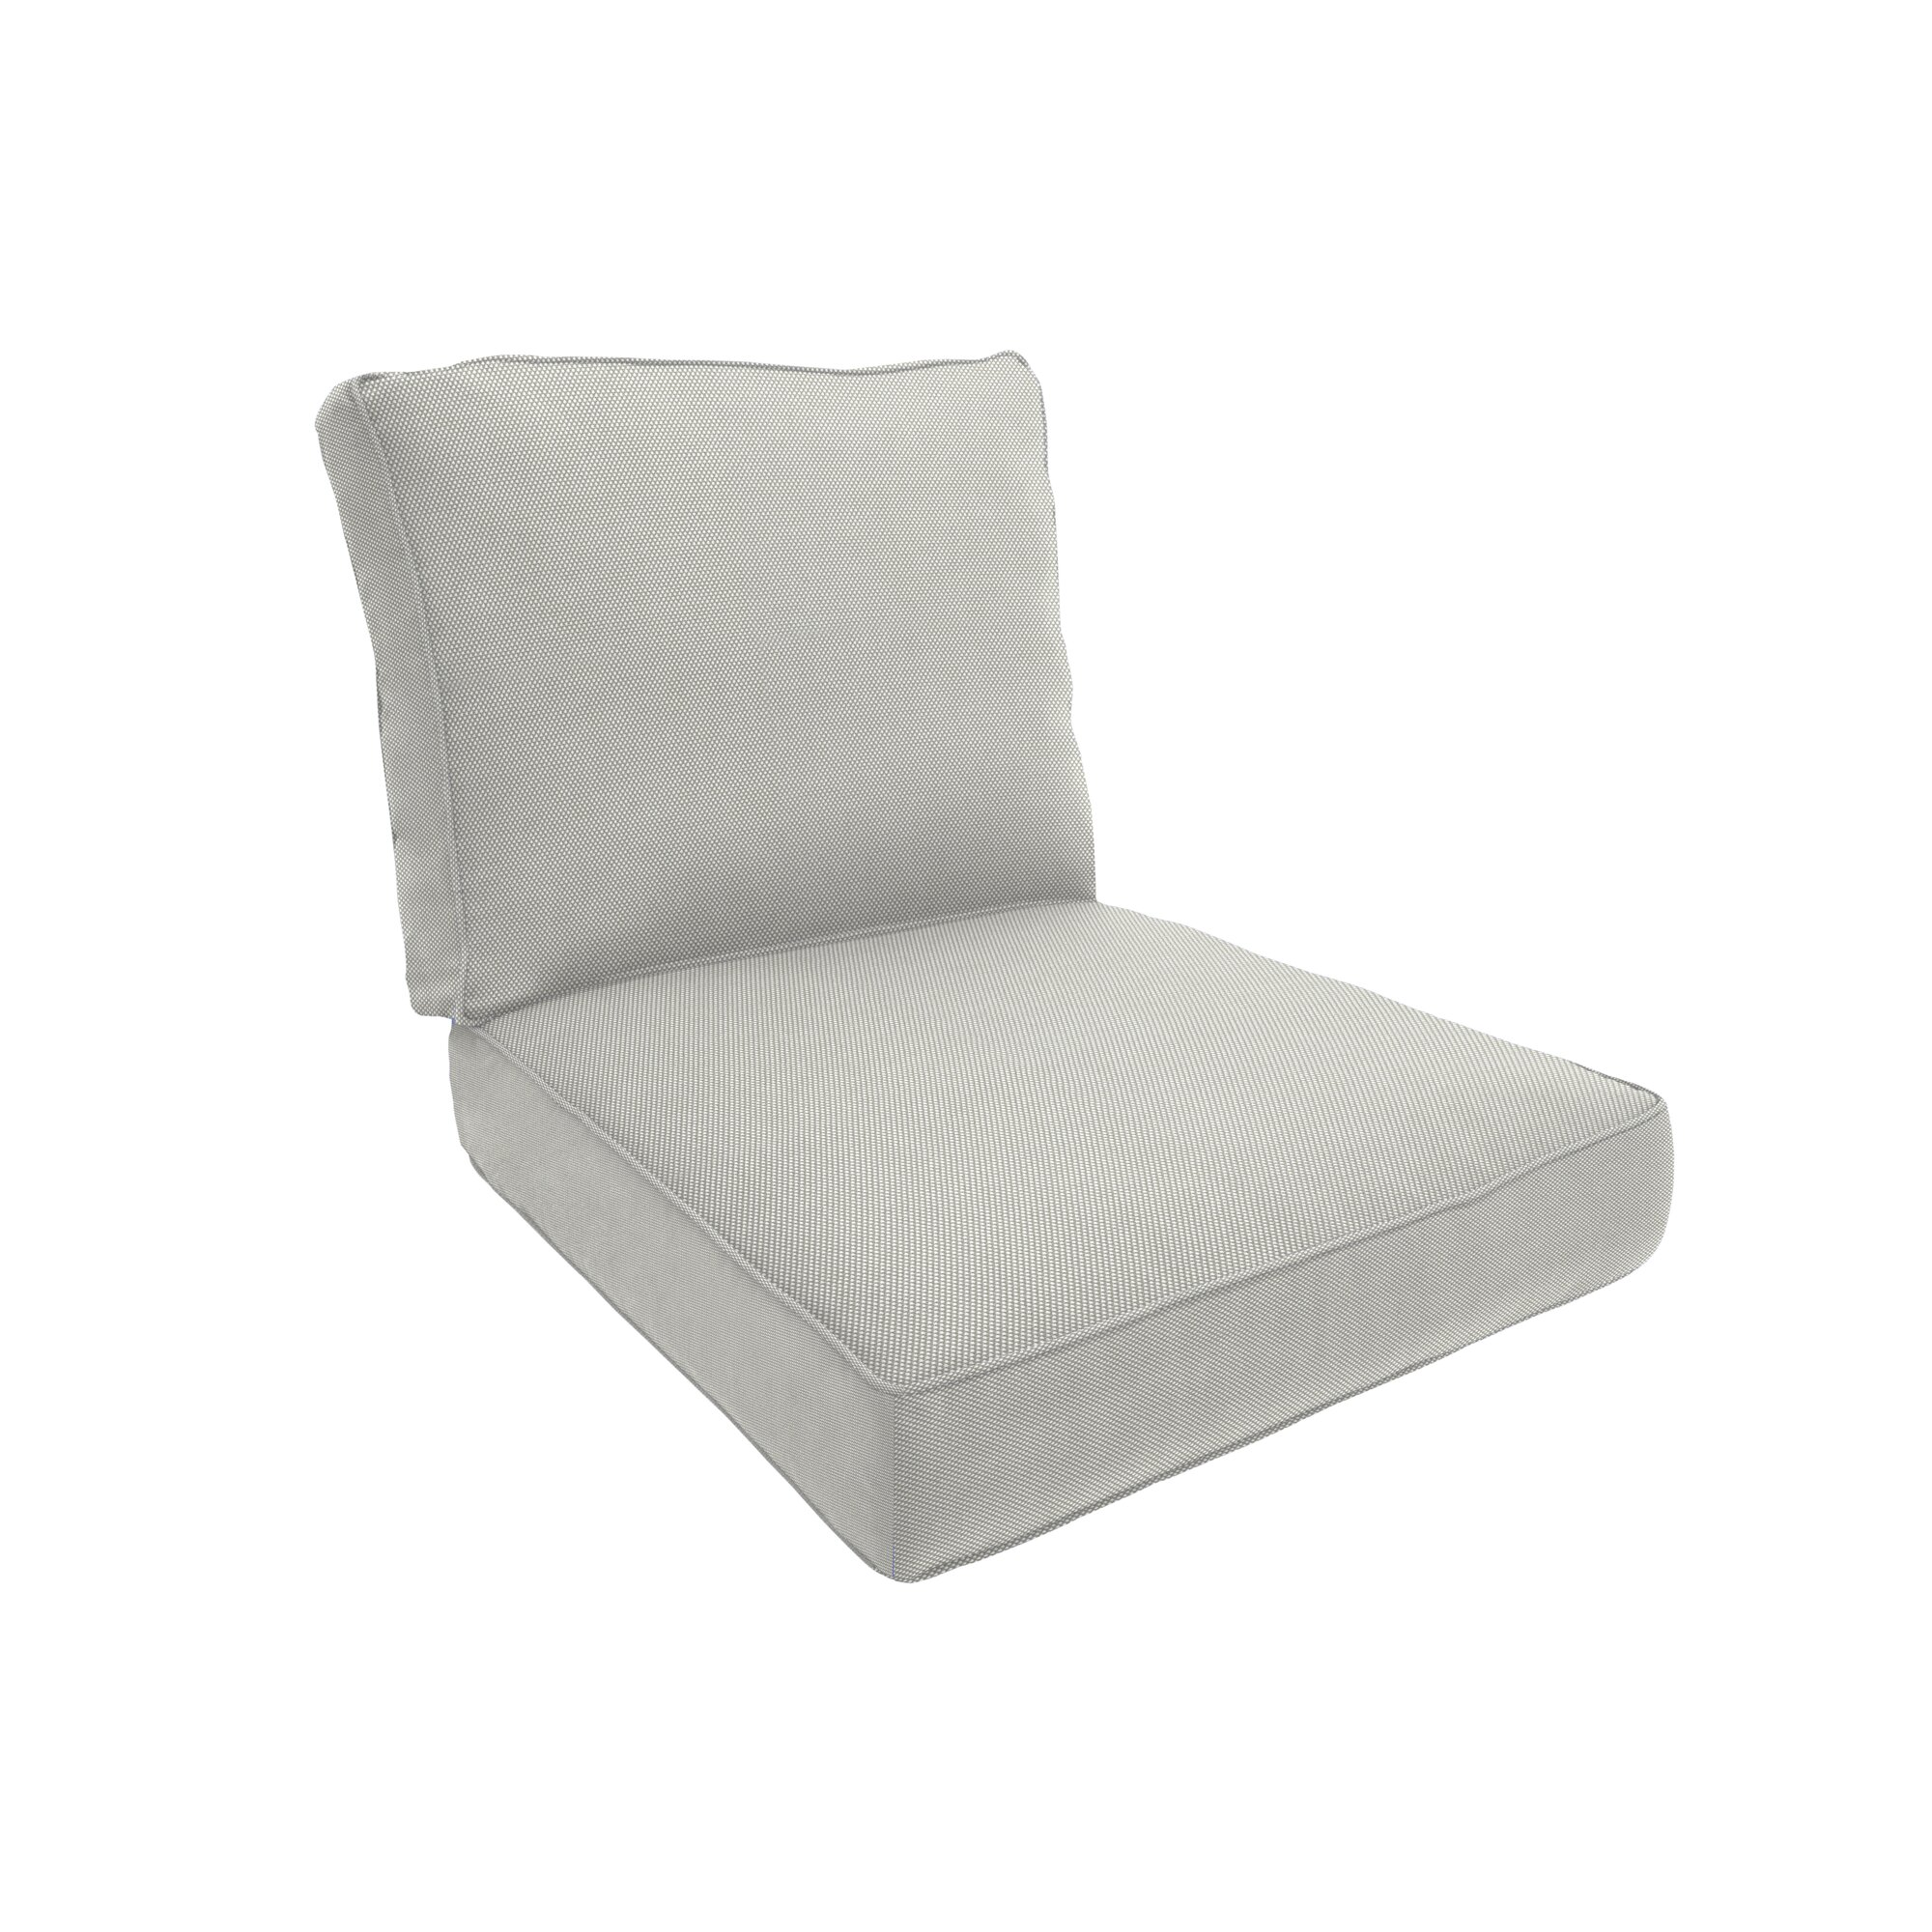 Wayfair Custom Outdoor Cushions Double Piped Outdoor